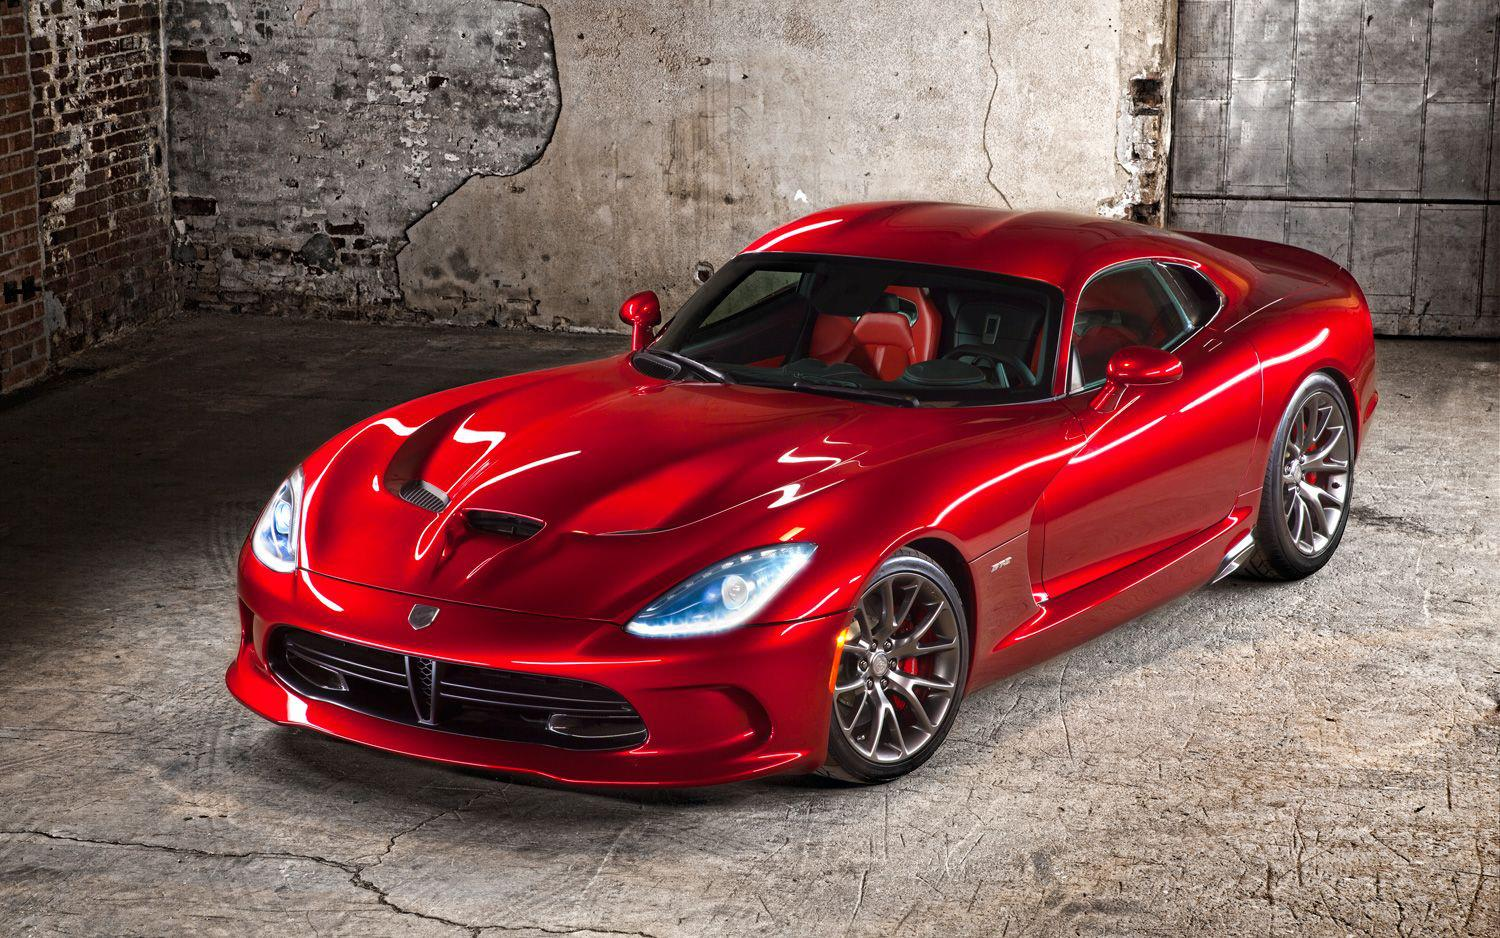 2013 Chrysler Srt Viper